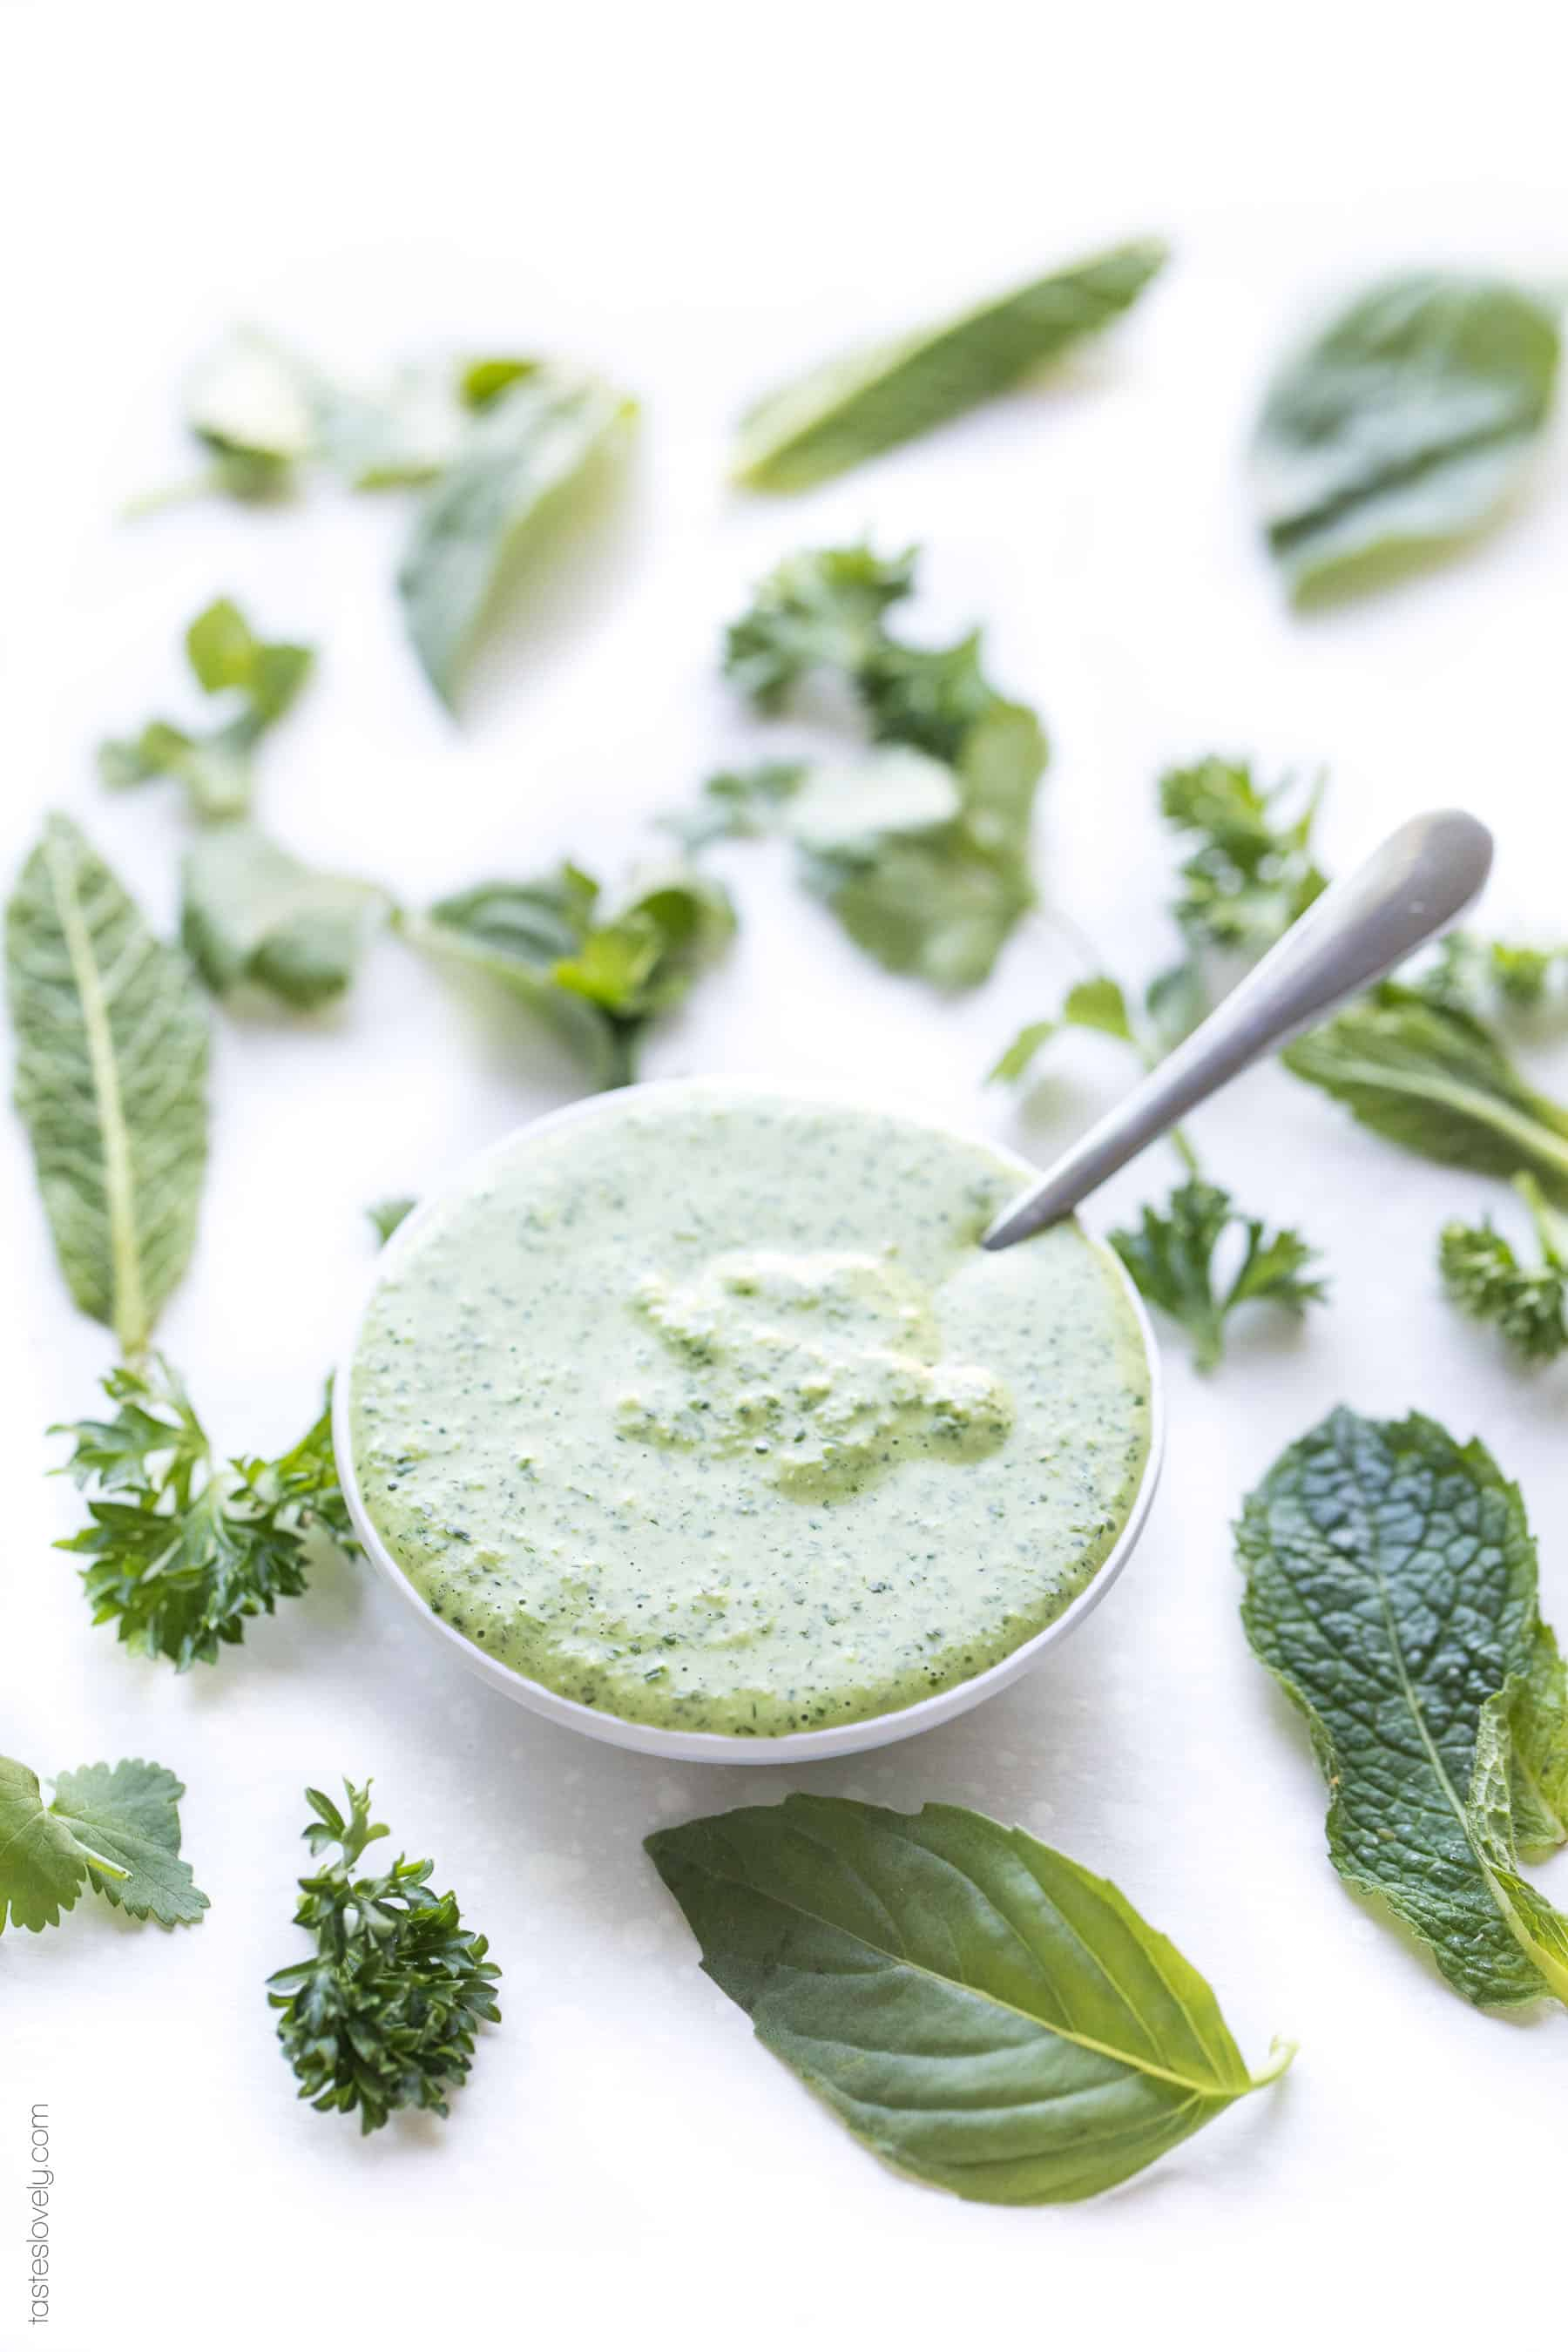 Paleo Herby Green Dressing - a light and refreshing dressing made with parsley, mint, basil and cilantro. Delicious on salads, meat and vegetables! Gluten free, dairy free, sugar free, clean eating.-1.CR2